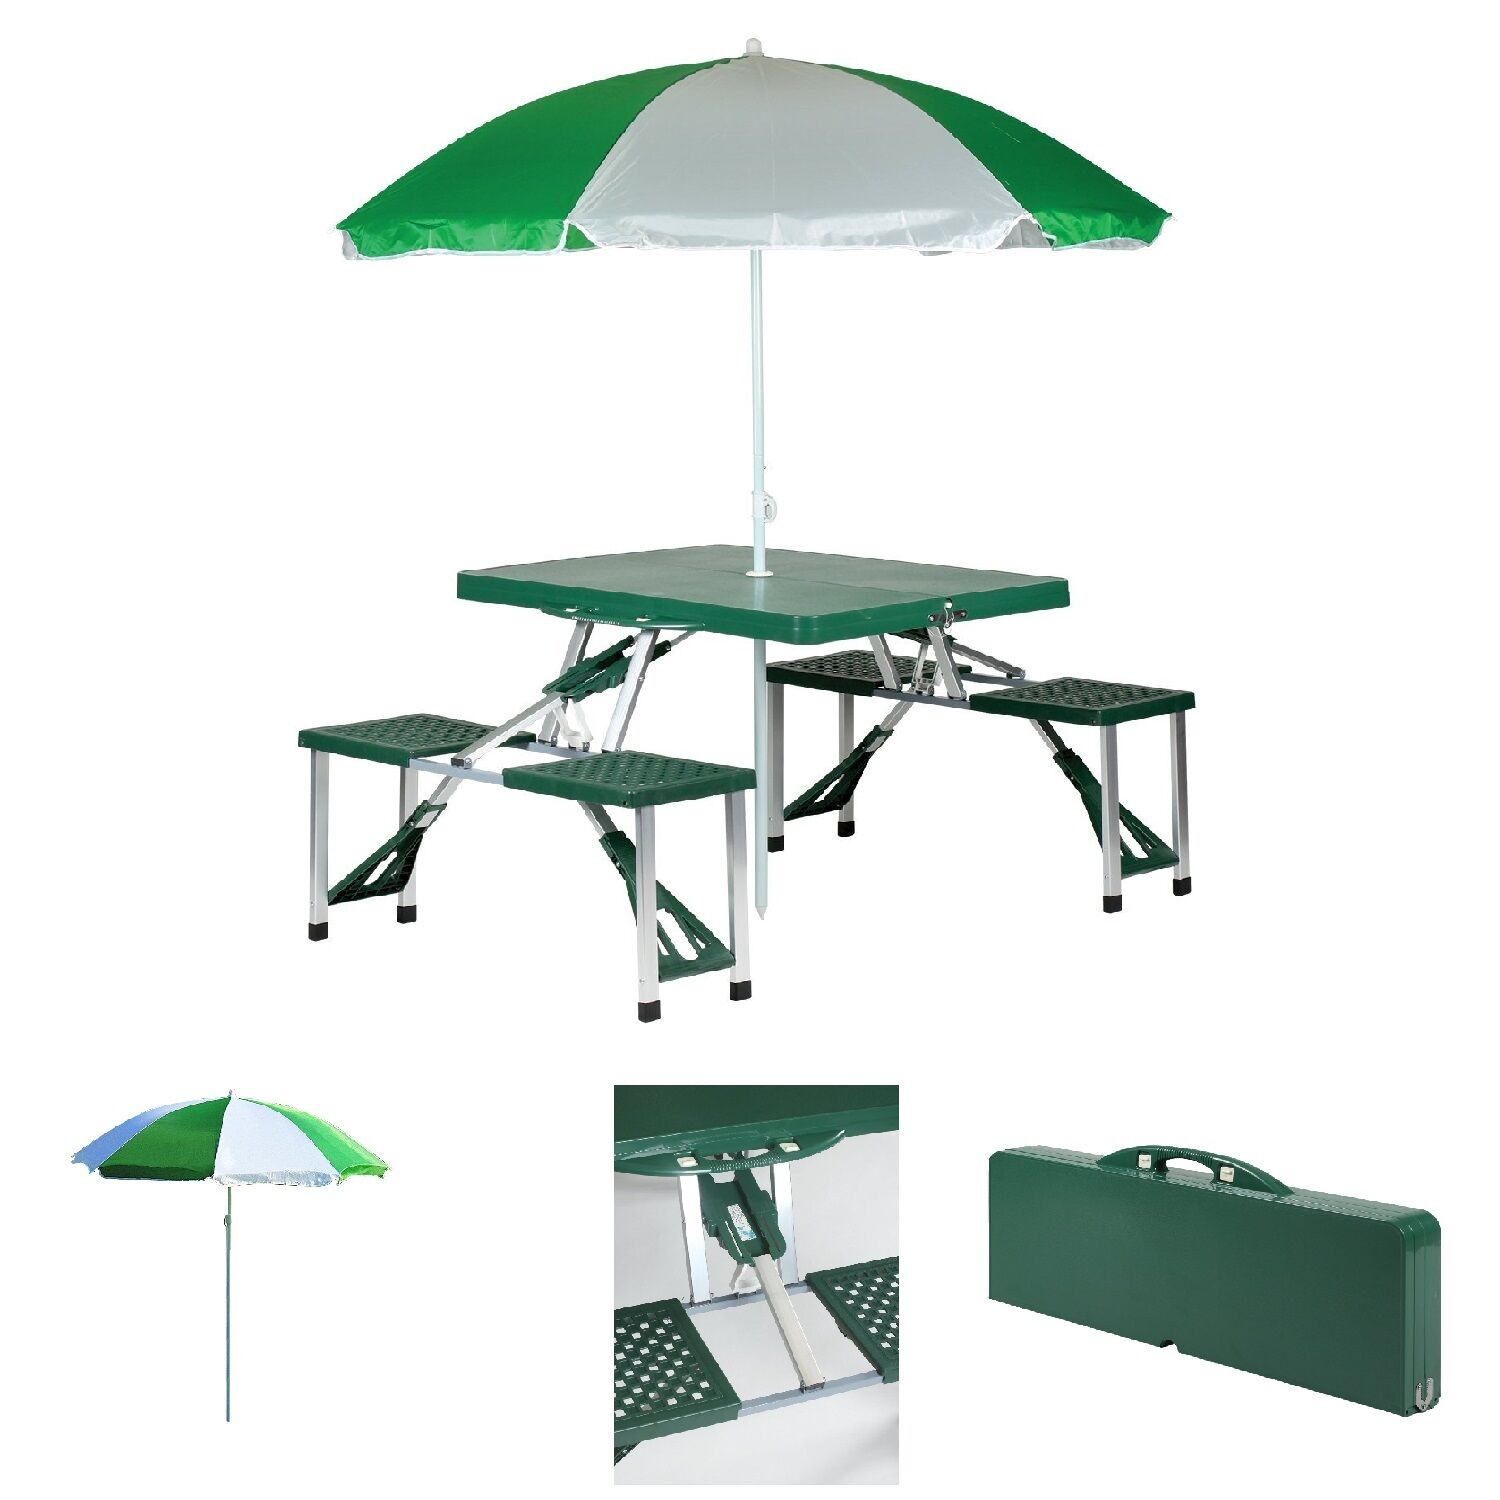 Picture 1 of 12 ...  sc 1 st  eBay & Picnic Table Set Folding Portable Umbrella Beach 4 Seat Outdoor ...